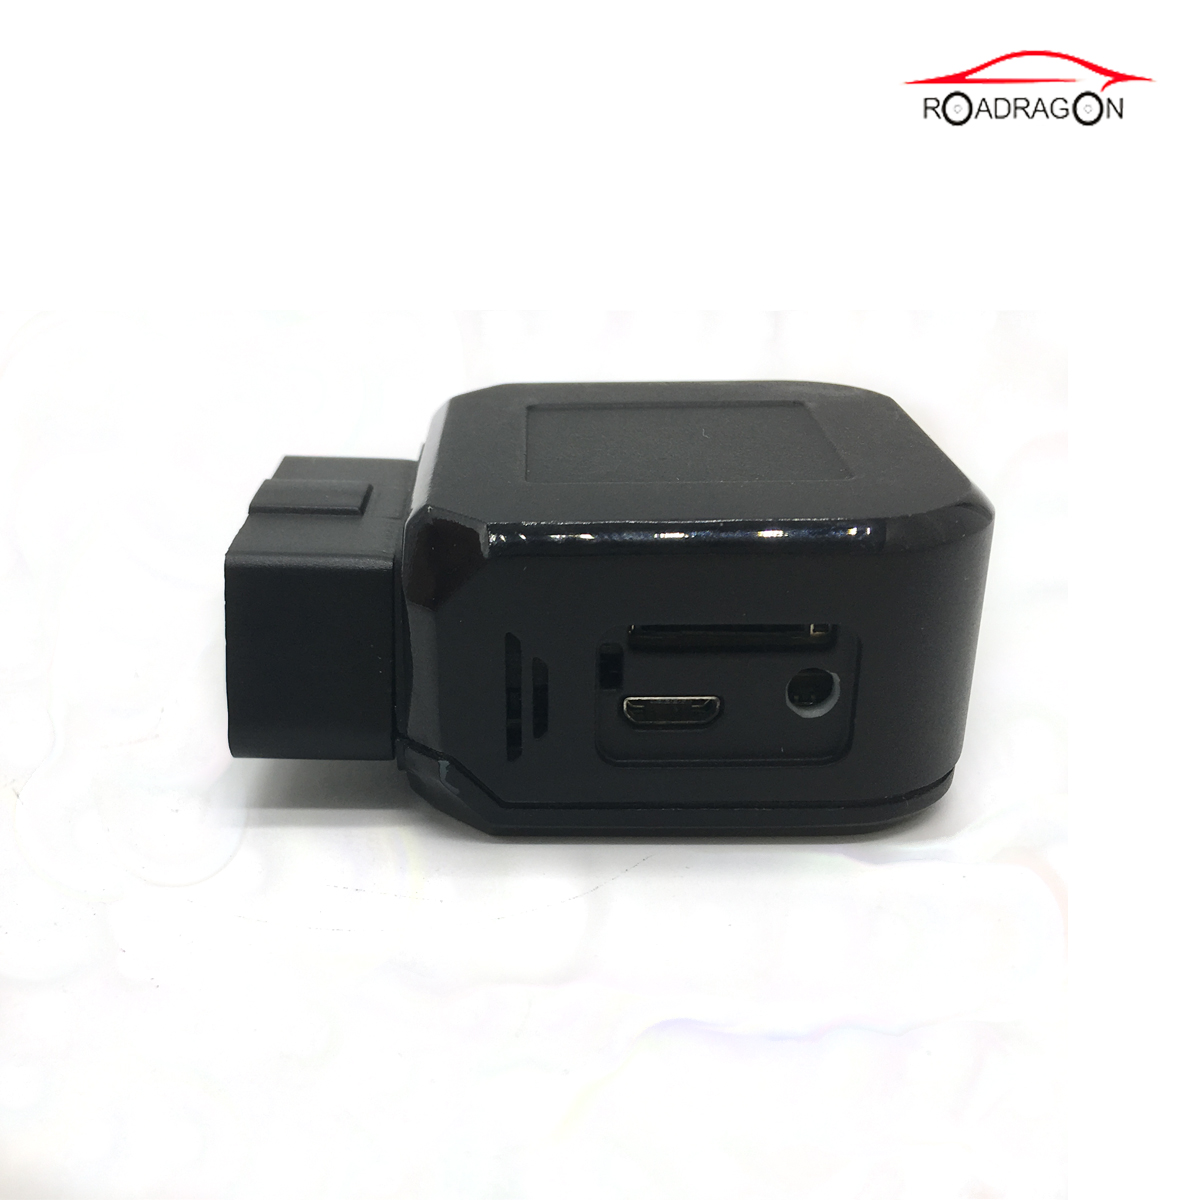 OBD GPS Vehicles tracking device M200 OBD2 gps tracker for Passenger Cars Featured Image